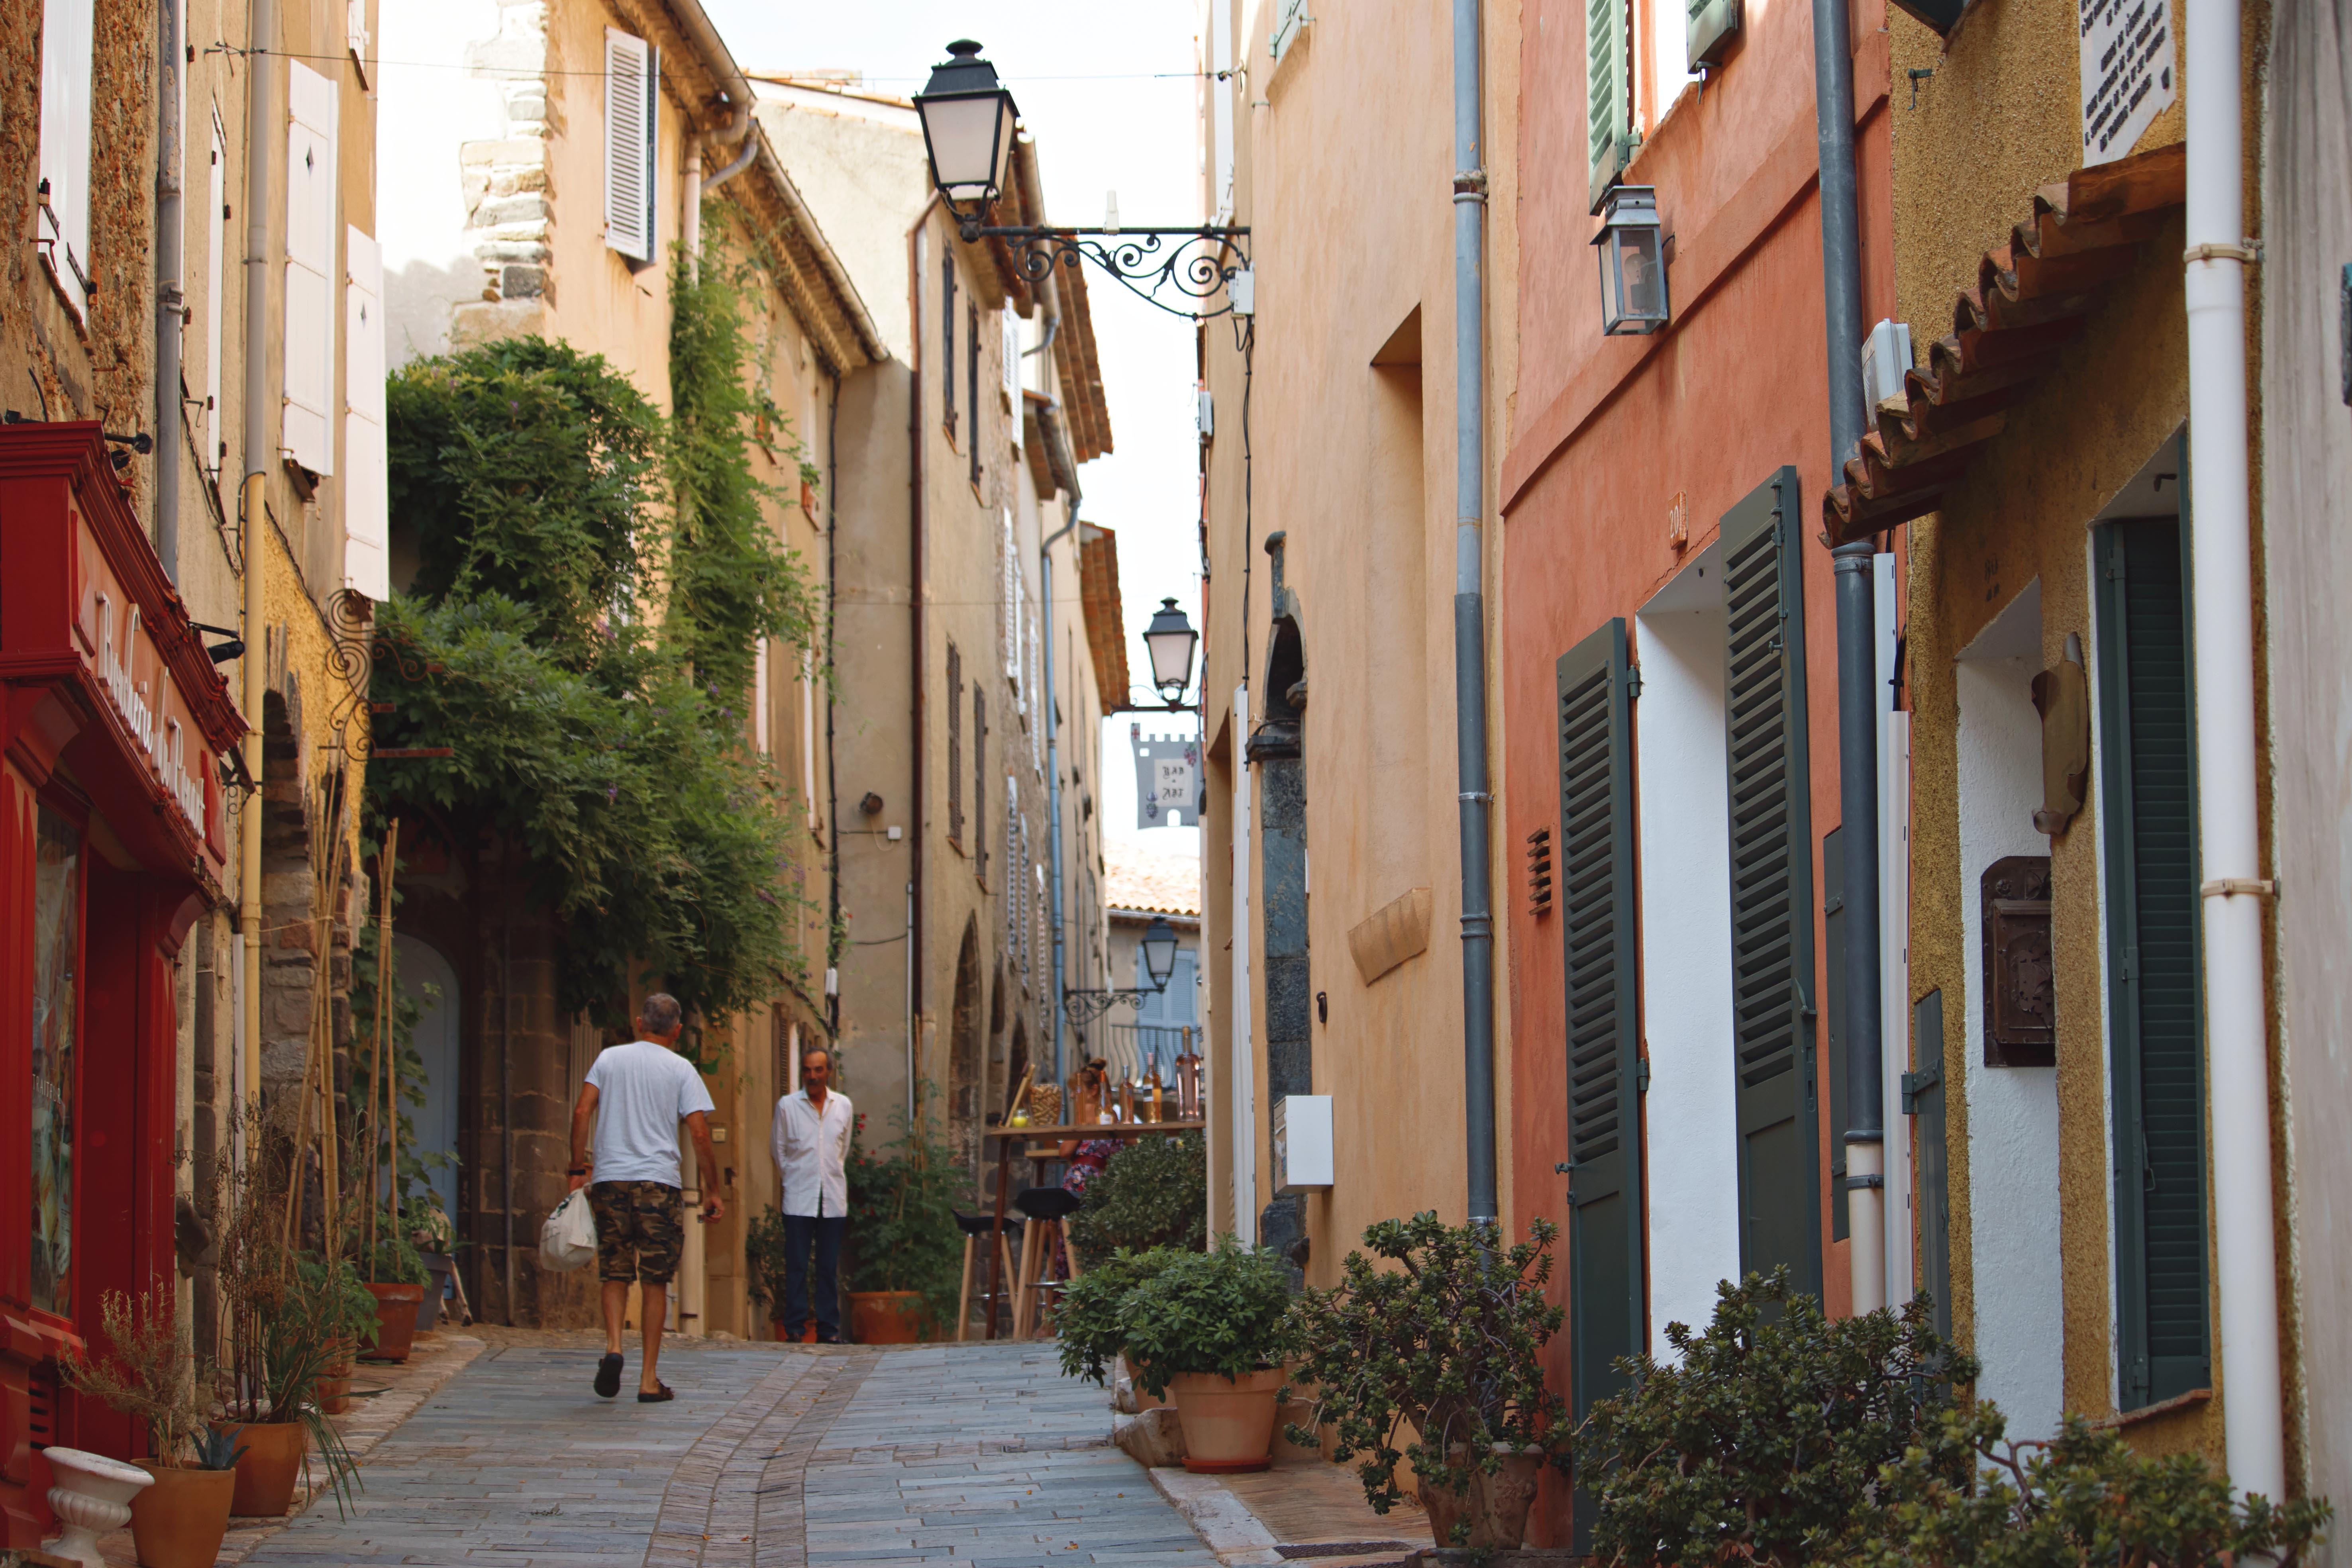 Quaint Highstreets in South of France